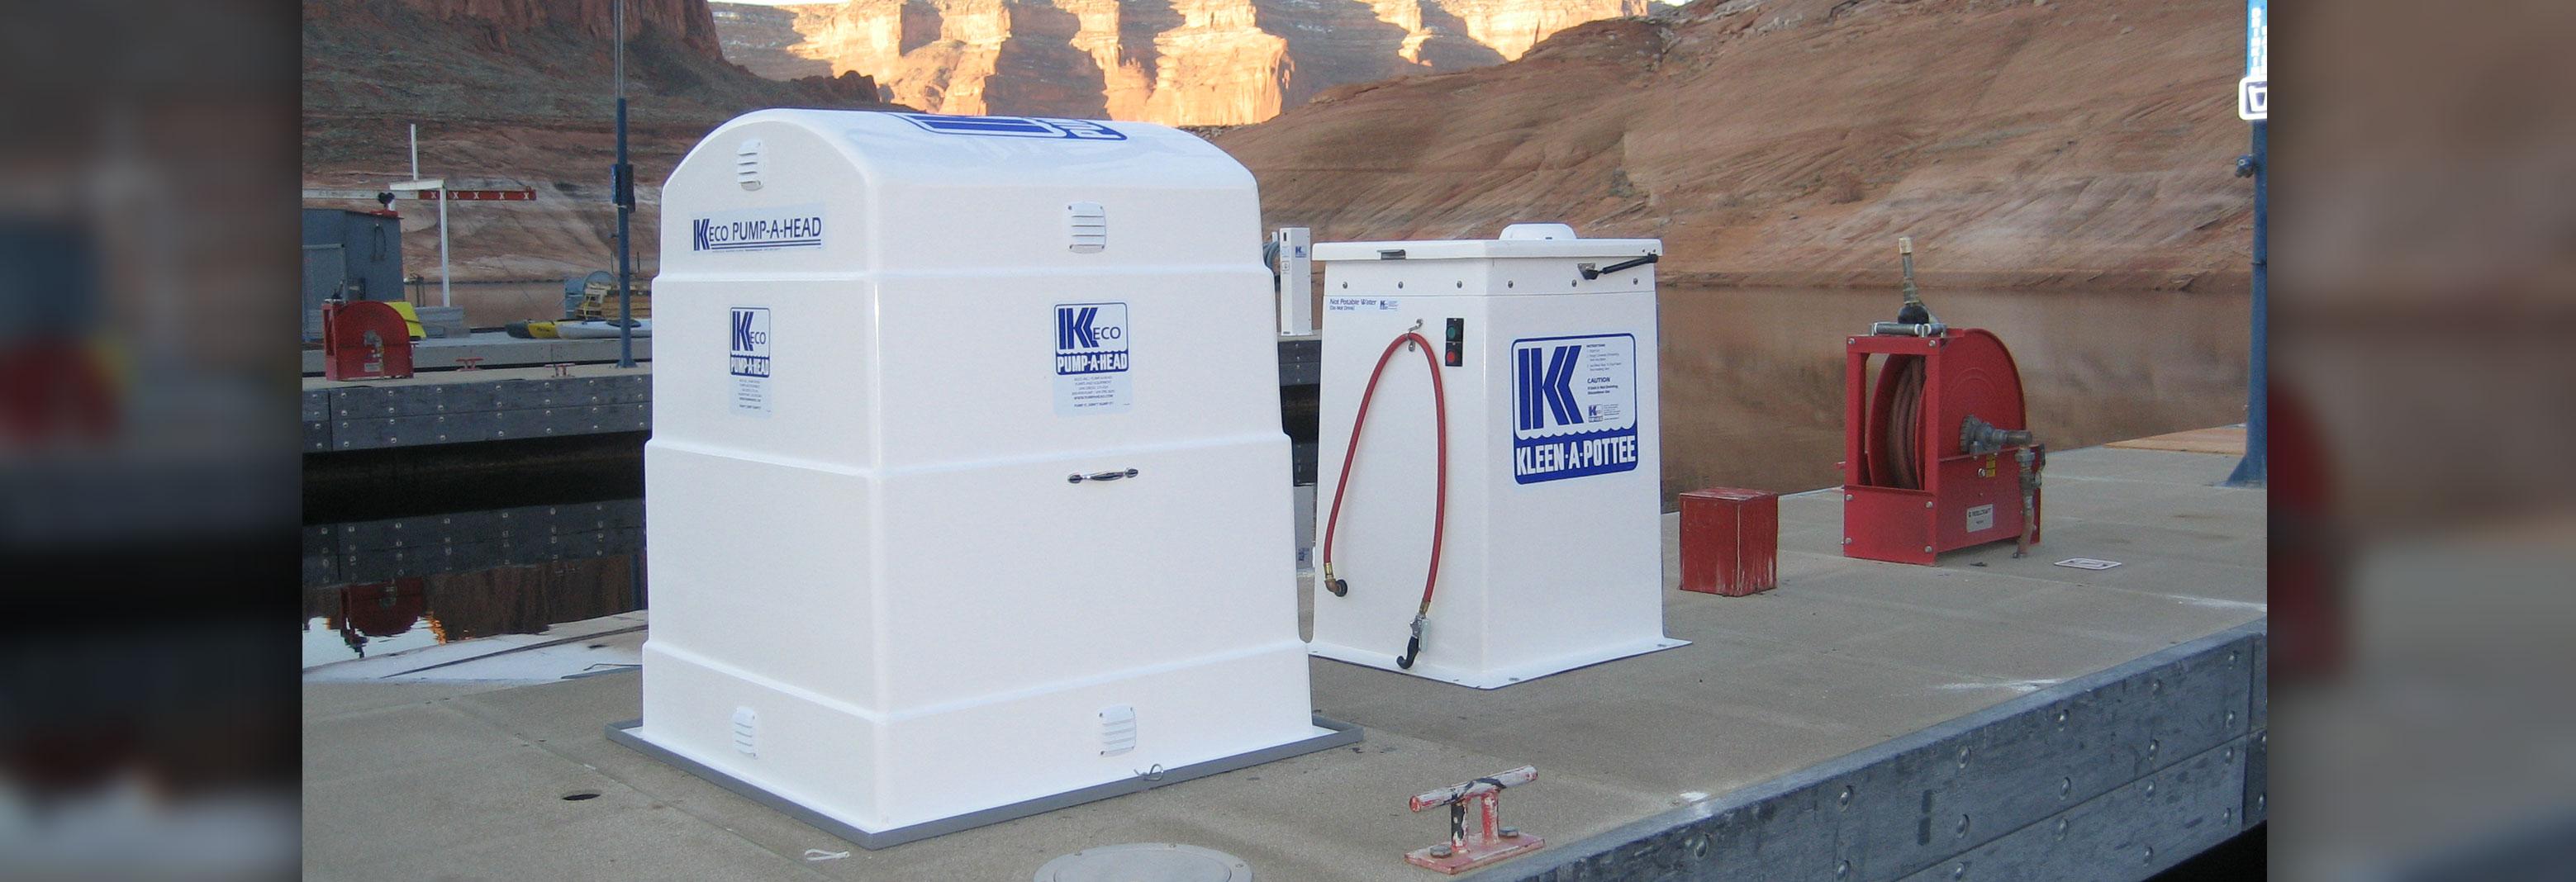 kleen a pottee, marine waste pump out systems, marine pump out station, marine pump out equipment